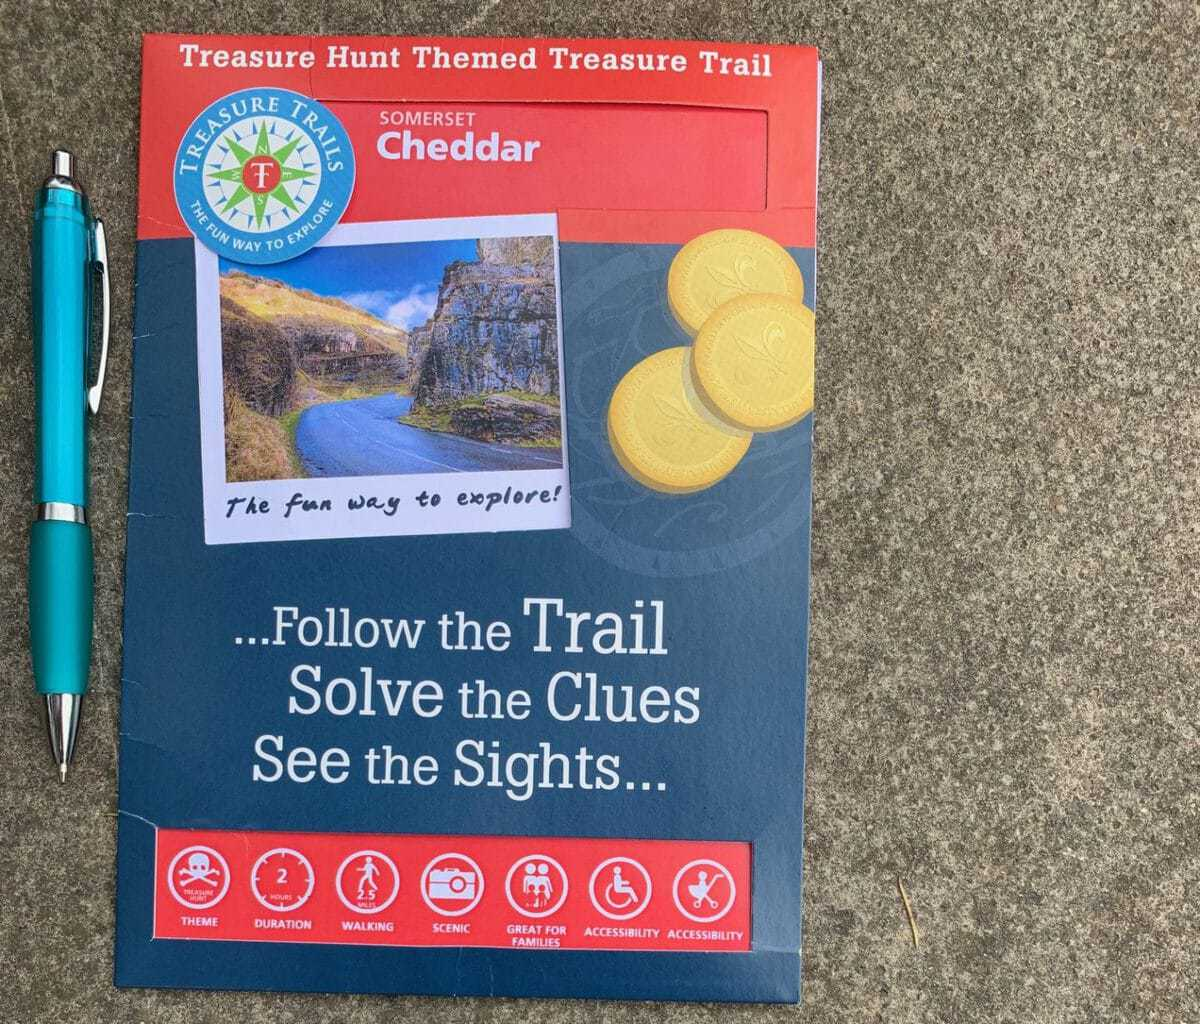 Treasure Trails - a real life adventure for all the family!